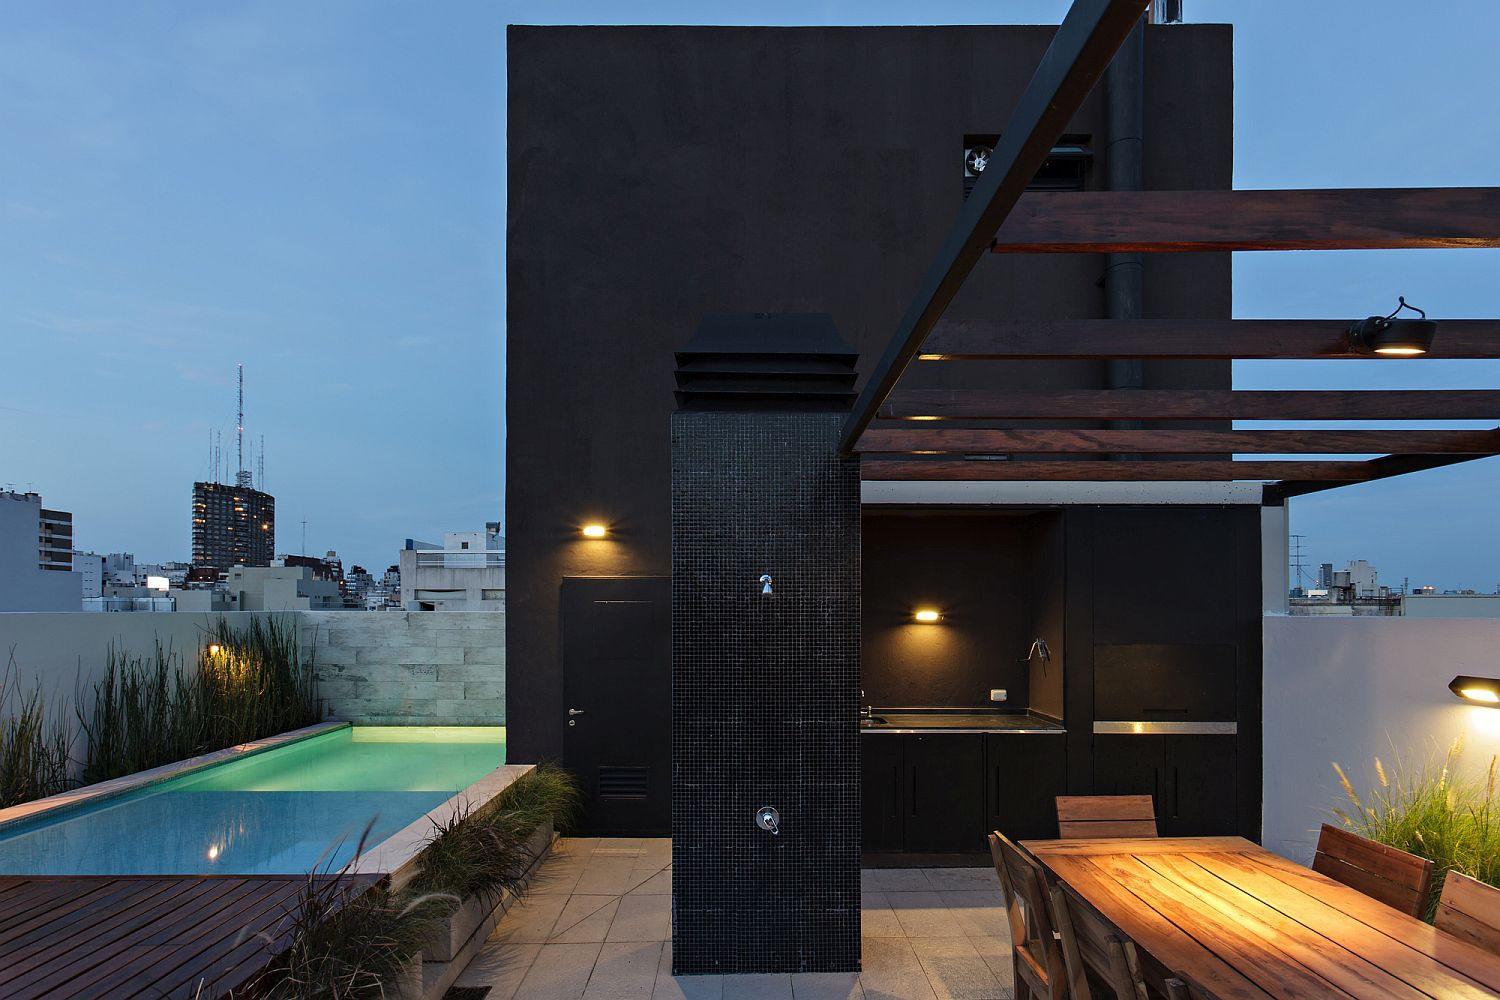 Triplex with its own spacious terrace, common pool and lounge area